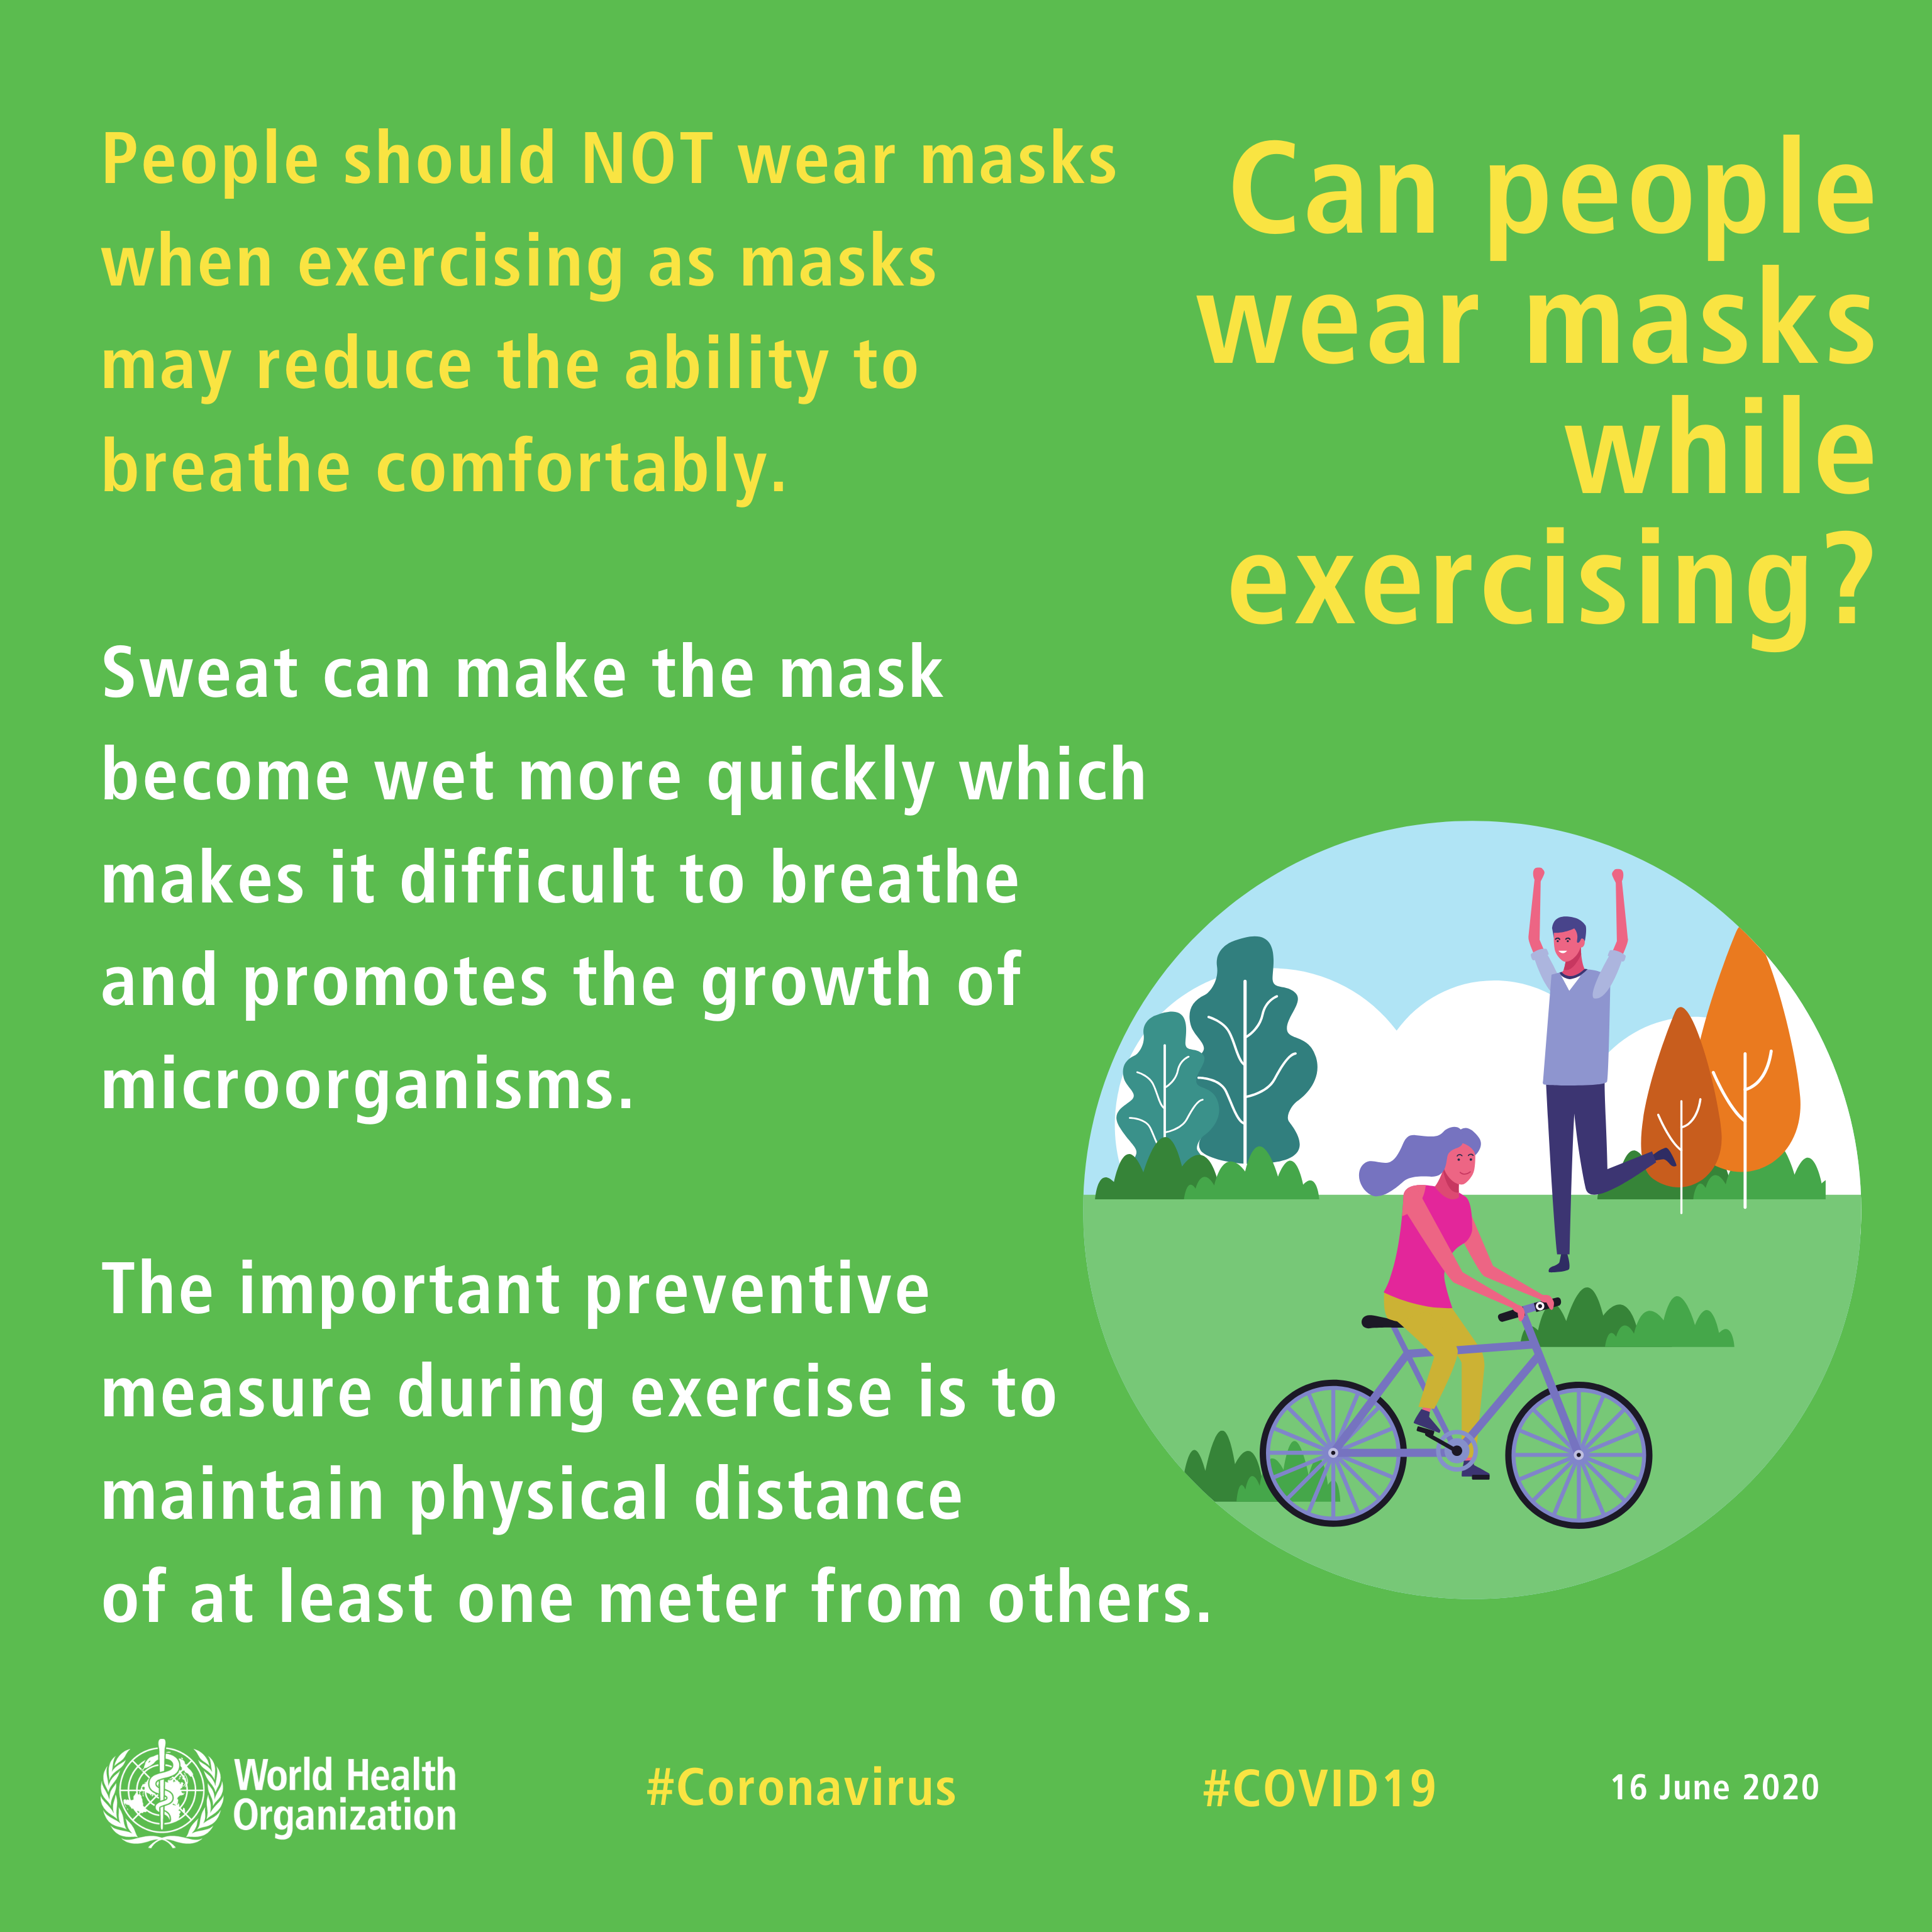 People should NOT wear masks when exercising as masks may